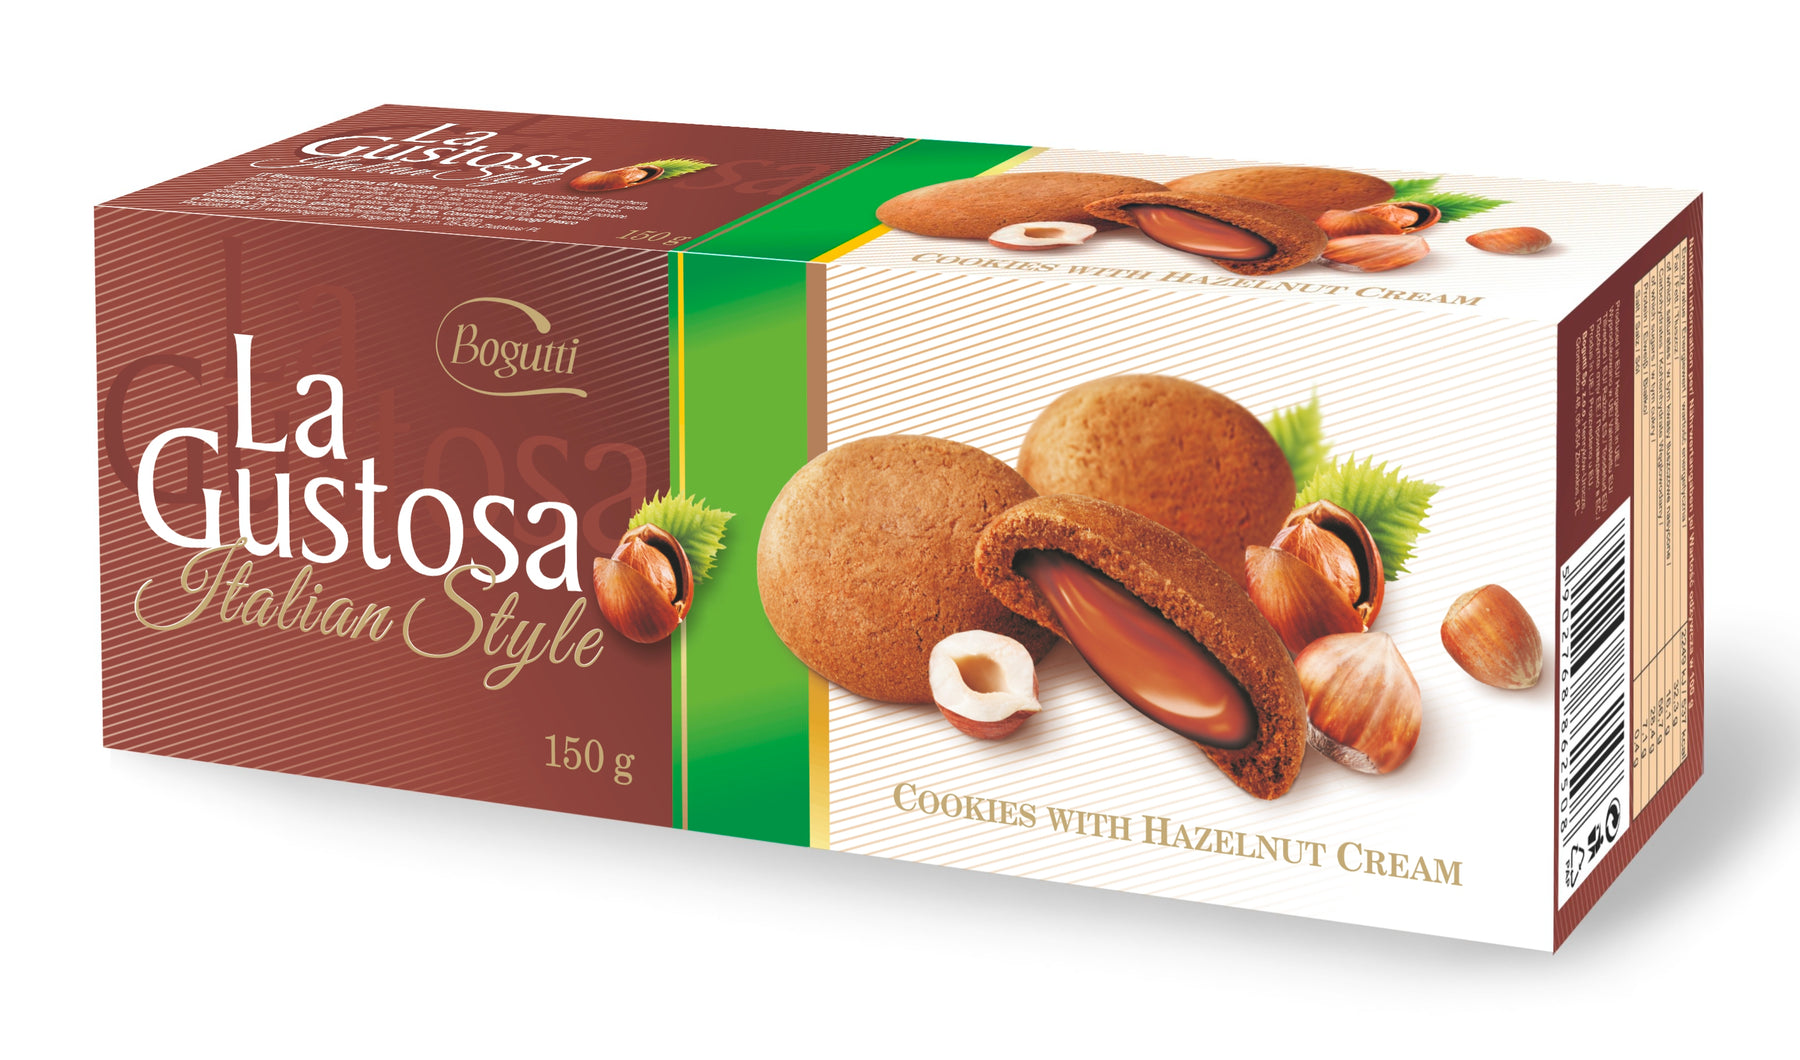 Bogutti La Gustosa Luxurious Cookies with Hazelnut Cream 150g